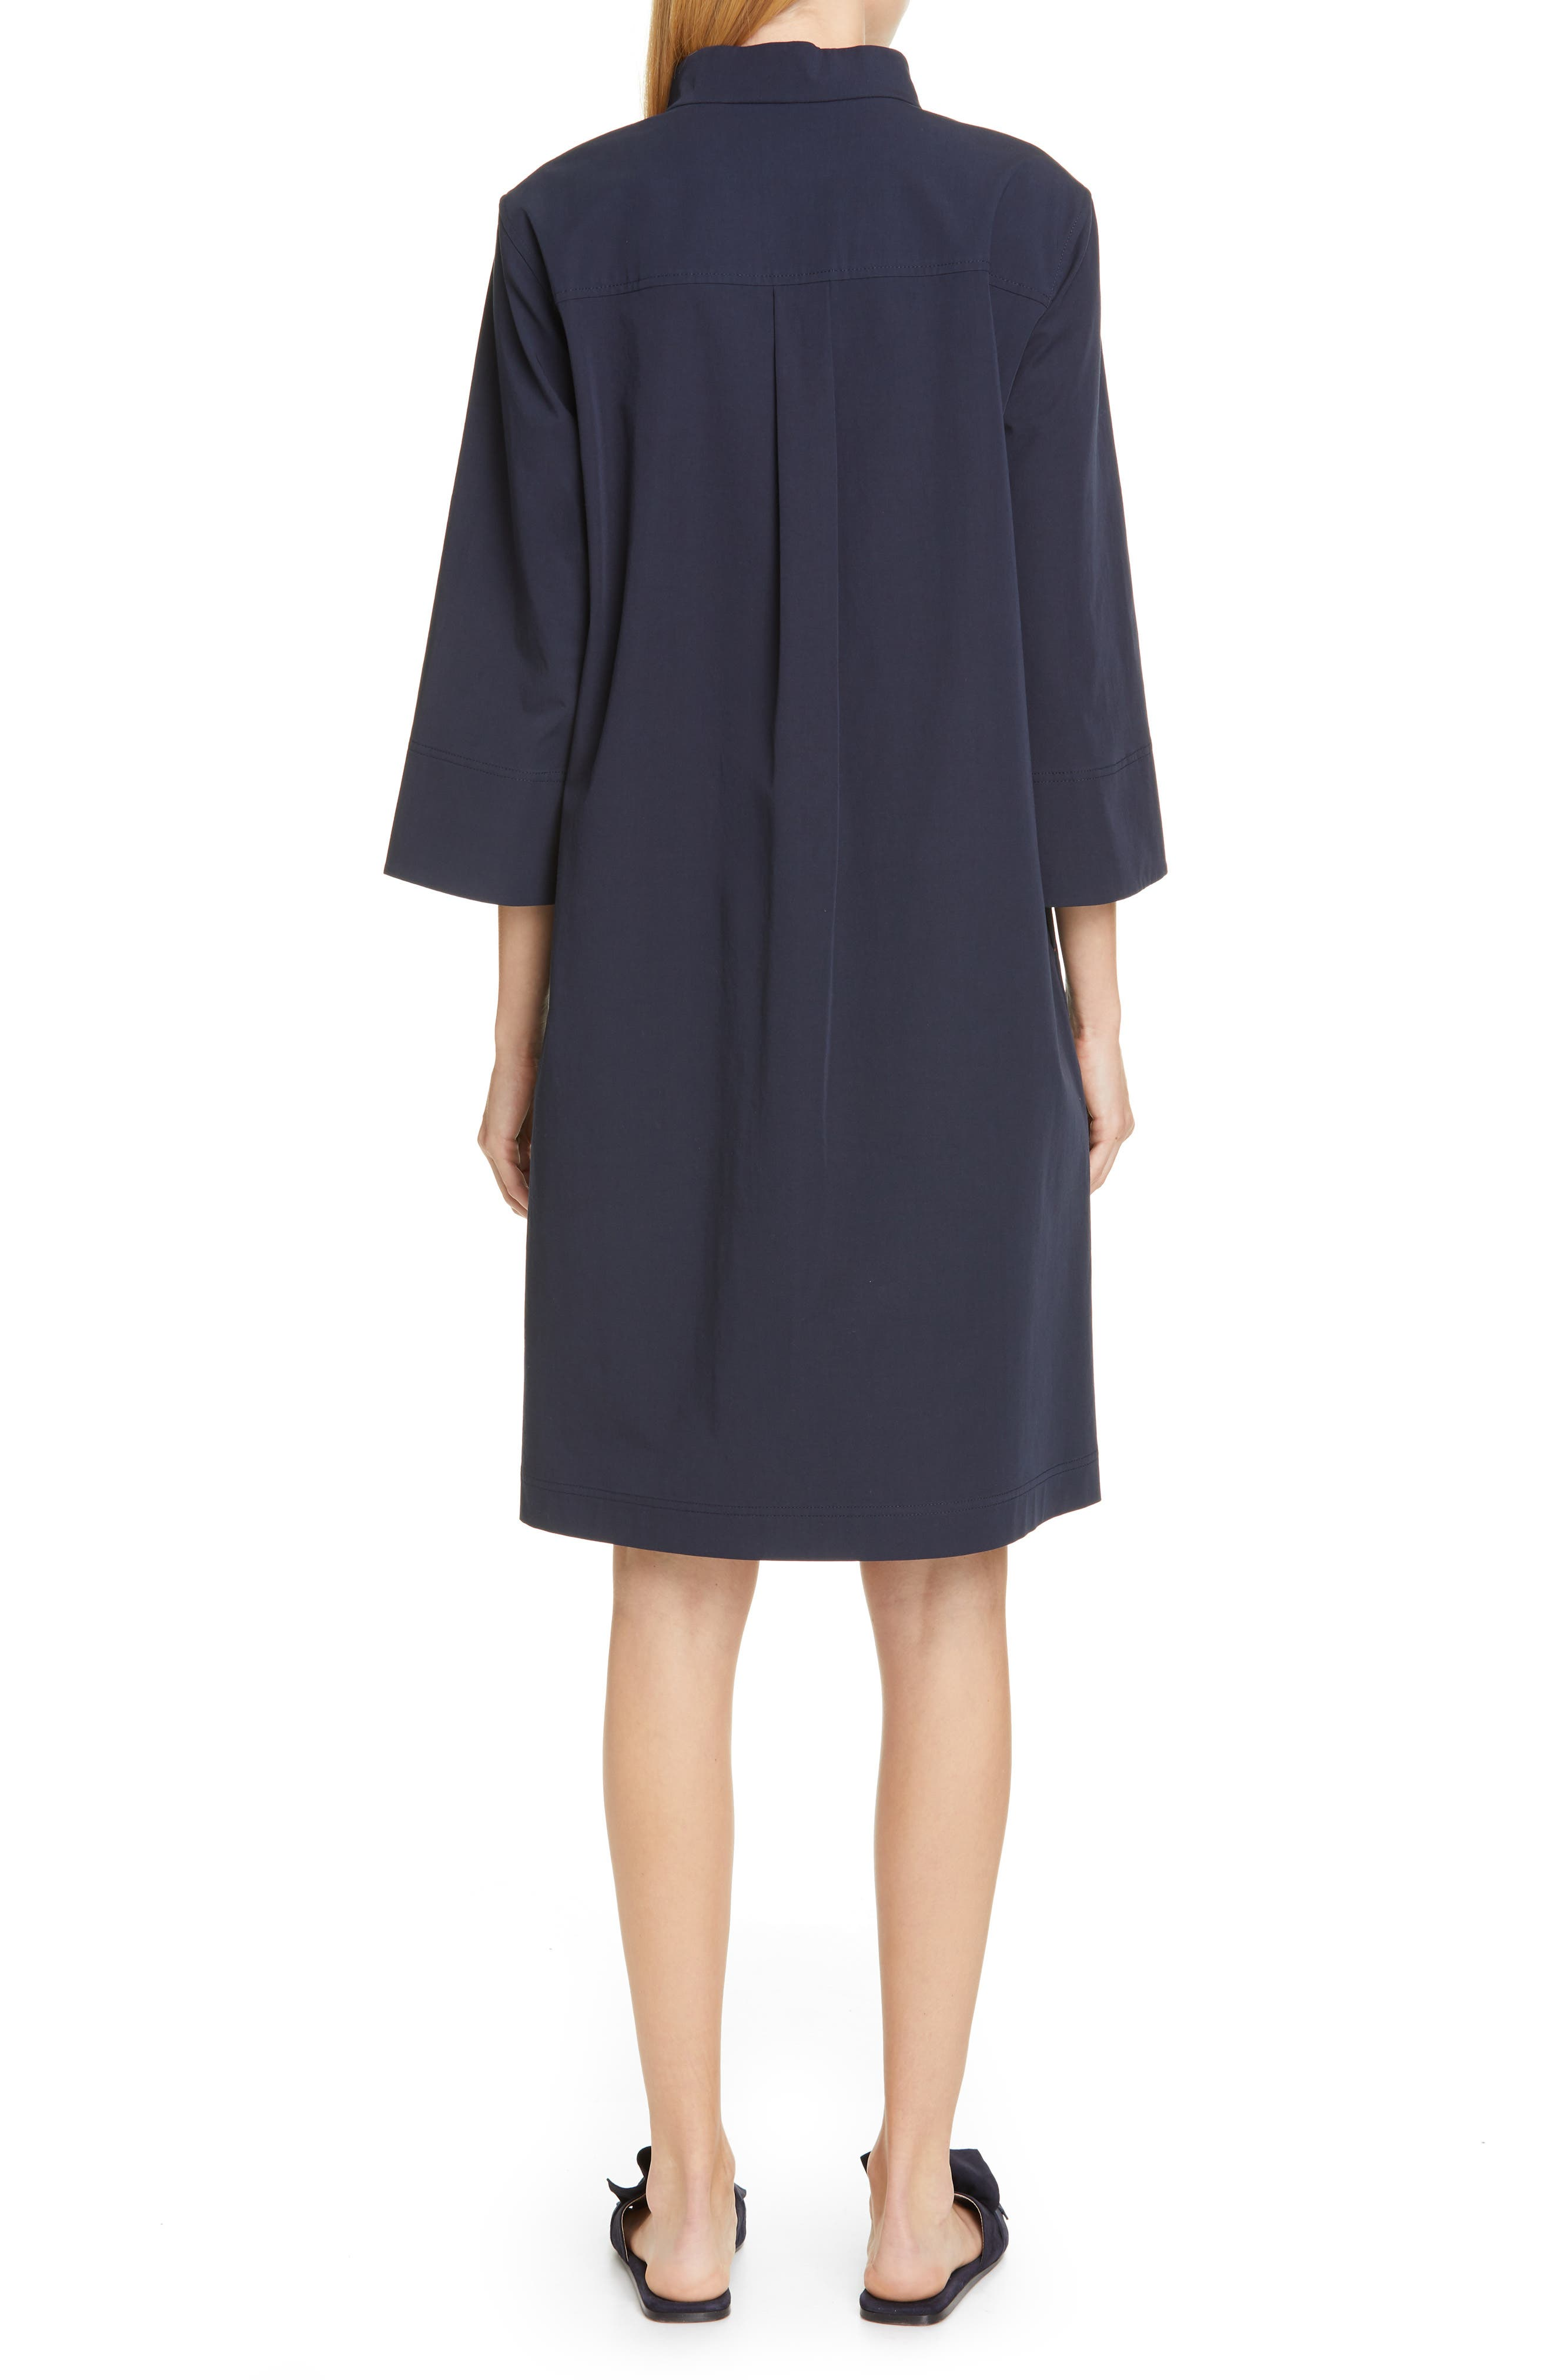 LAFAYETTE 148 NEW YORK, Mitchell Shift Dress, Alternate thumbnail 2, color, INK